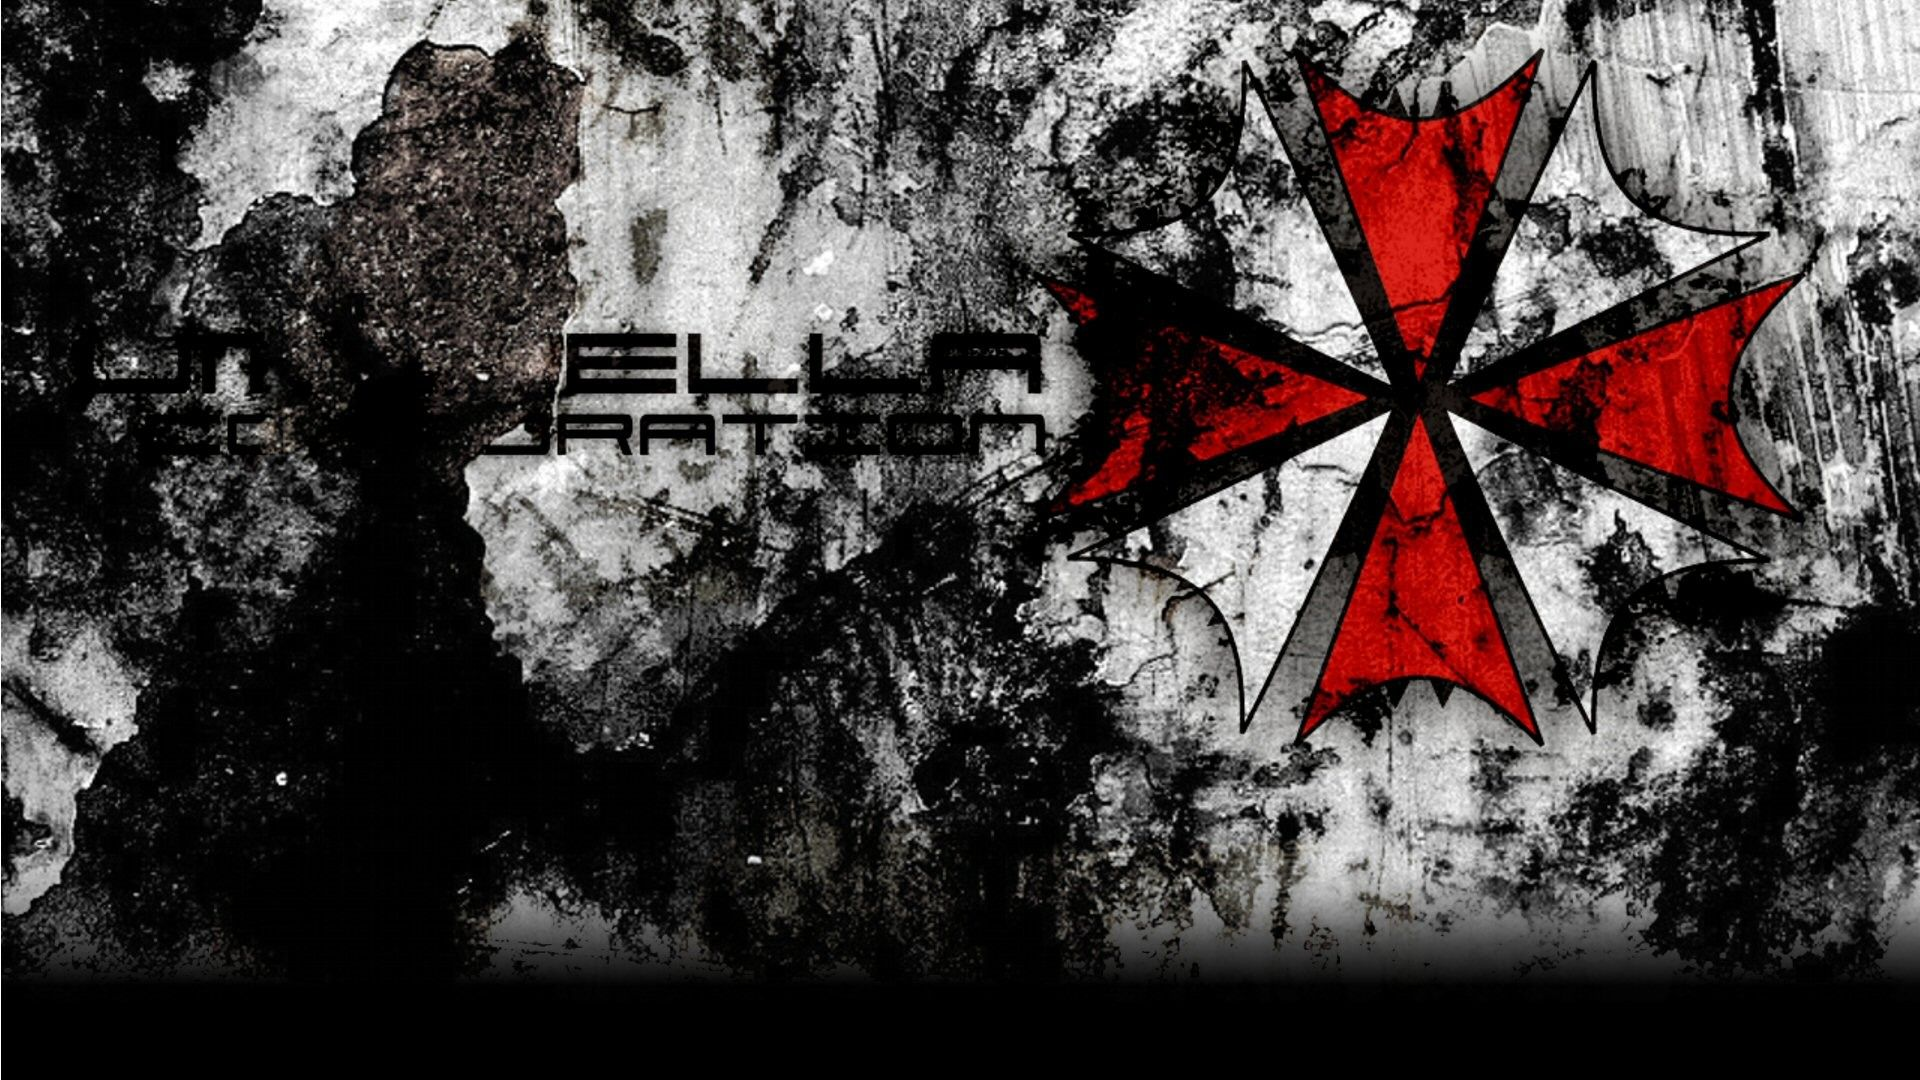 Resident Evil Hd Wallpapers Top Free Resident Evil Hd